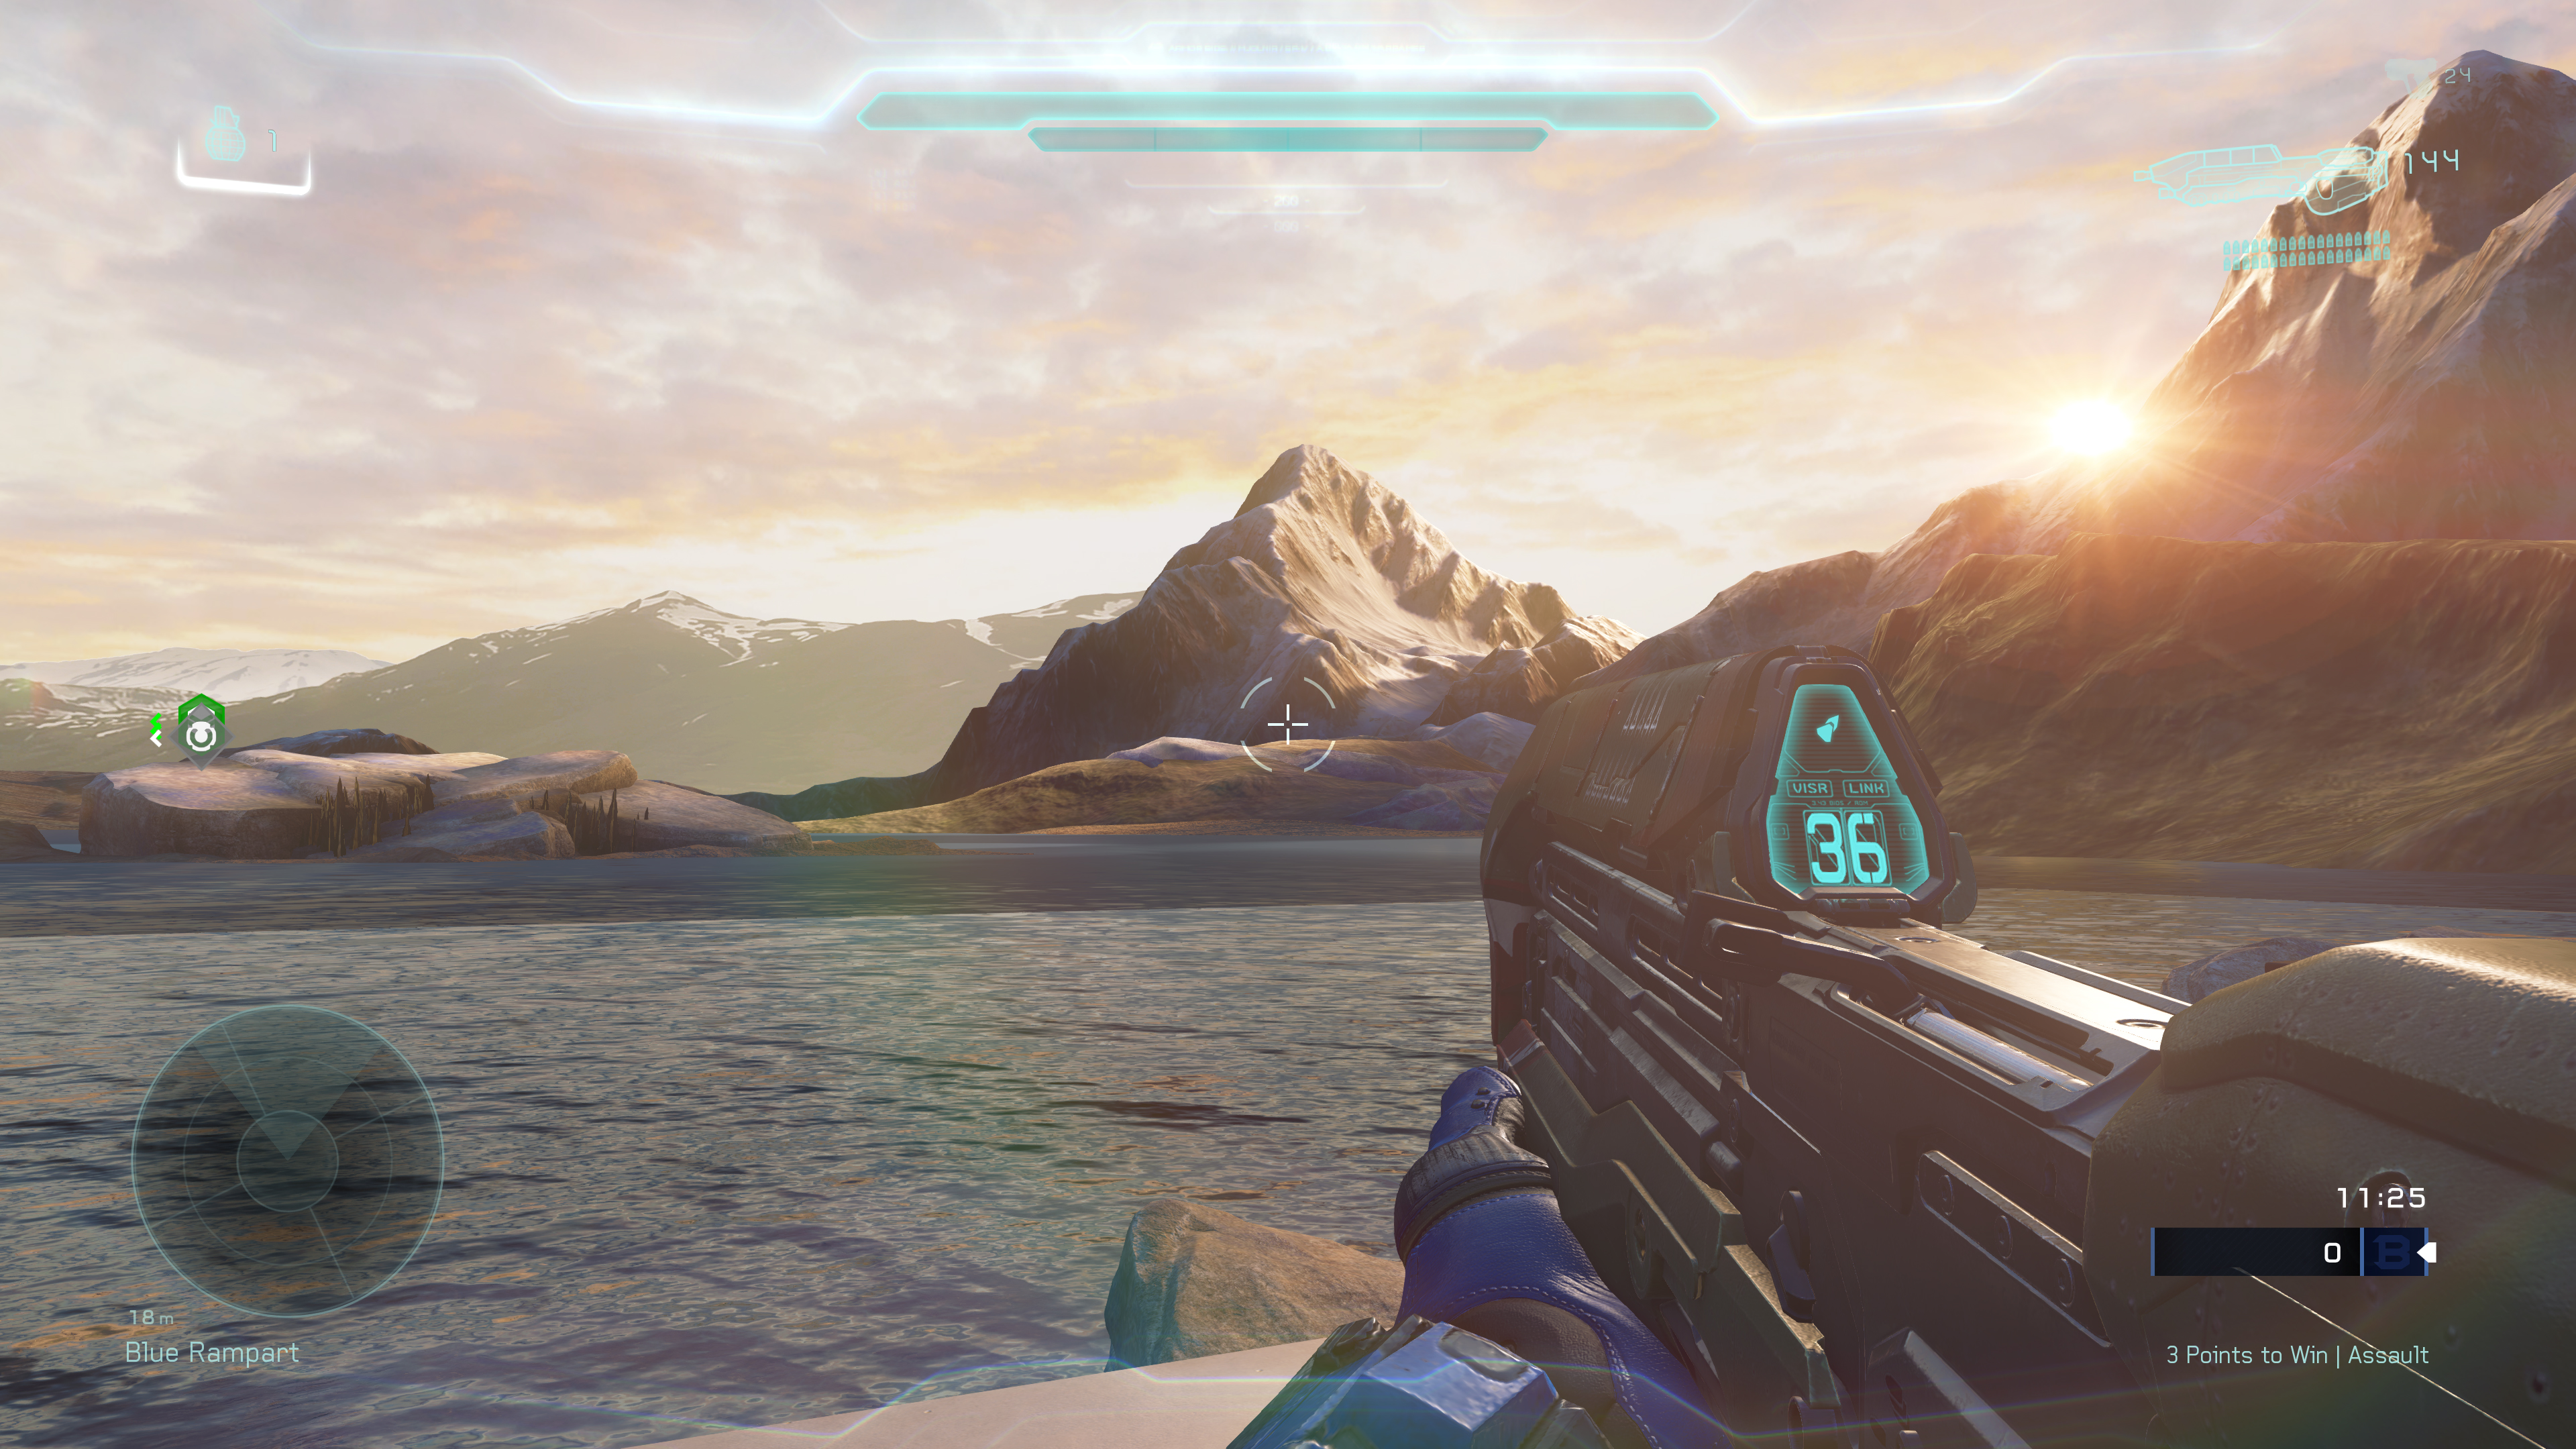 The 12 best shooters on PC and consoles | TechRadar